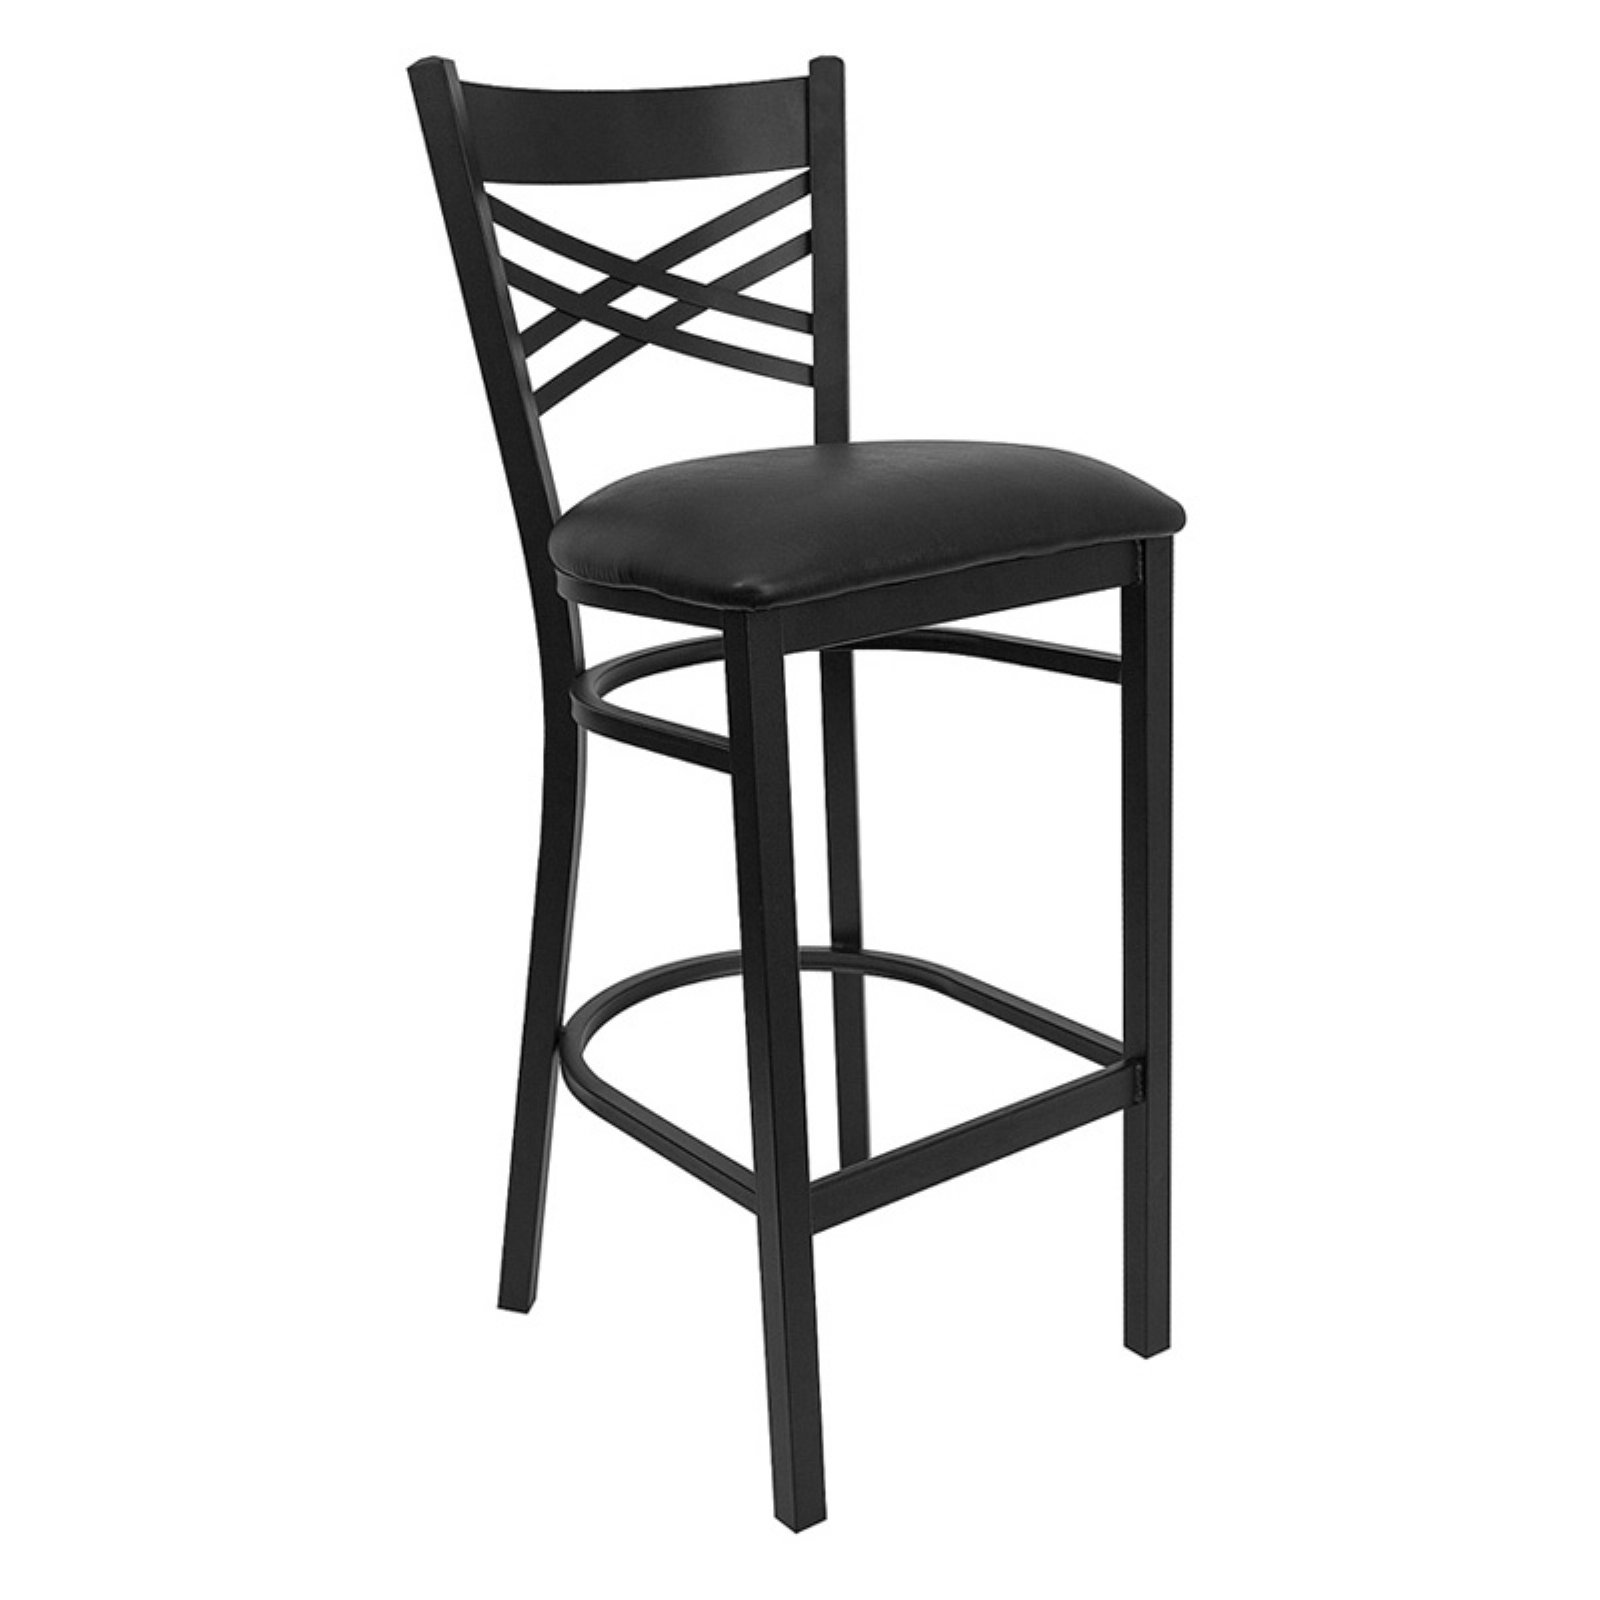 Flash Furniture 31 in. Hercules X-Back Restaurant Vinyl Seat Bar Stool - Black